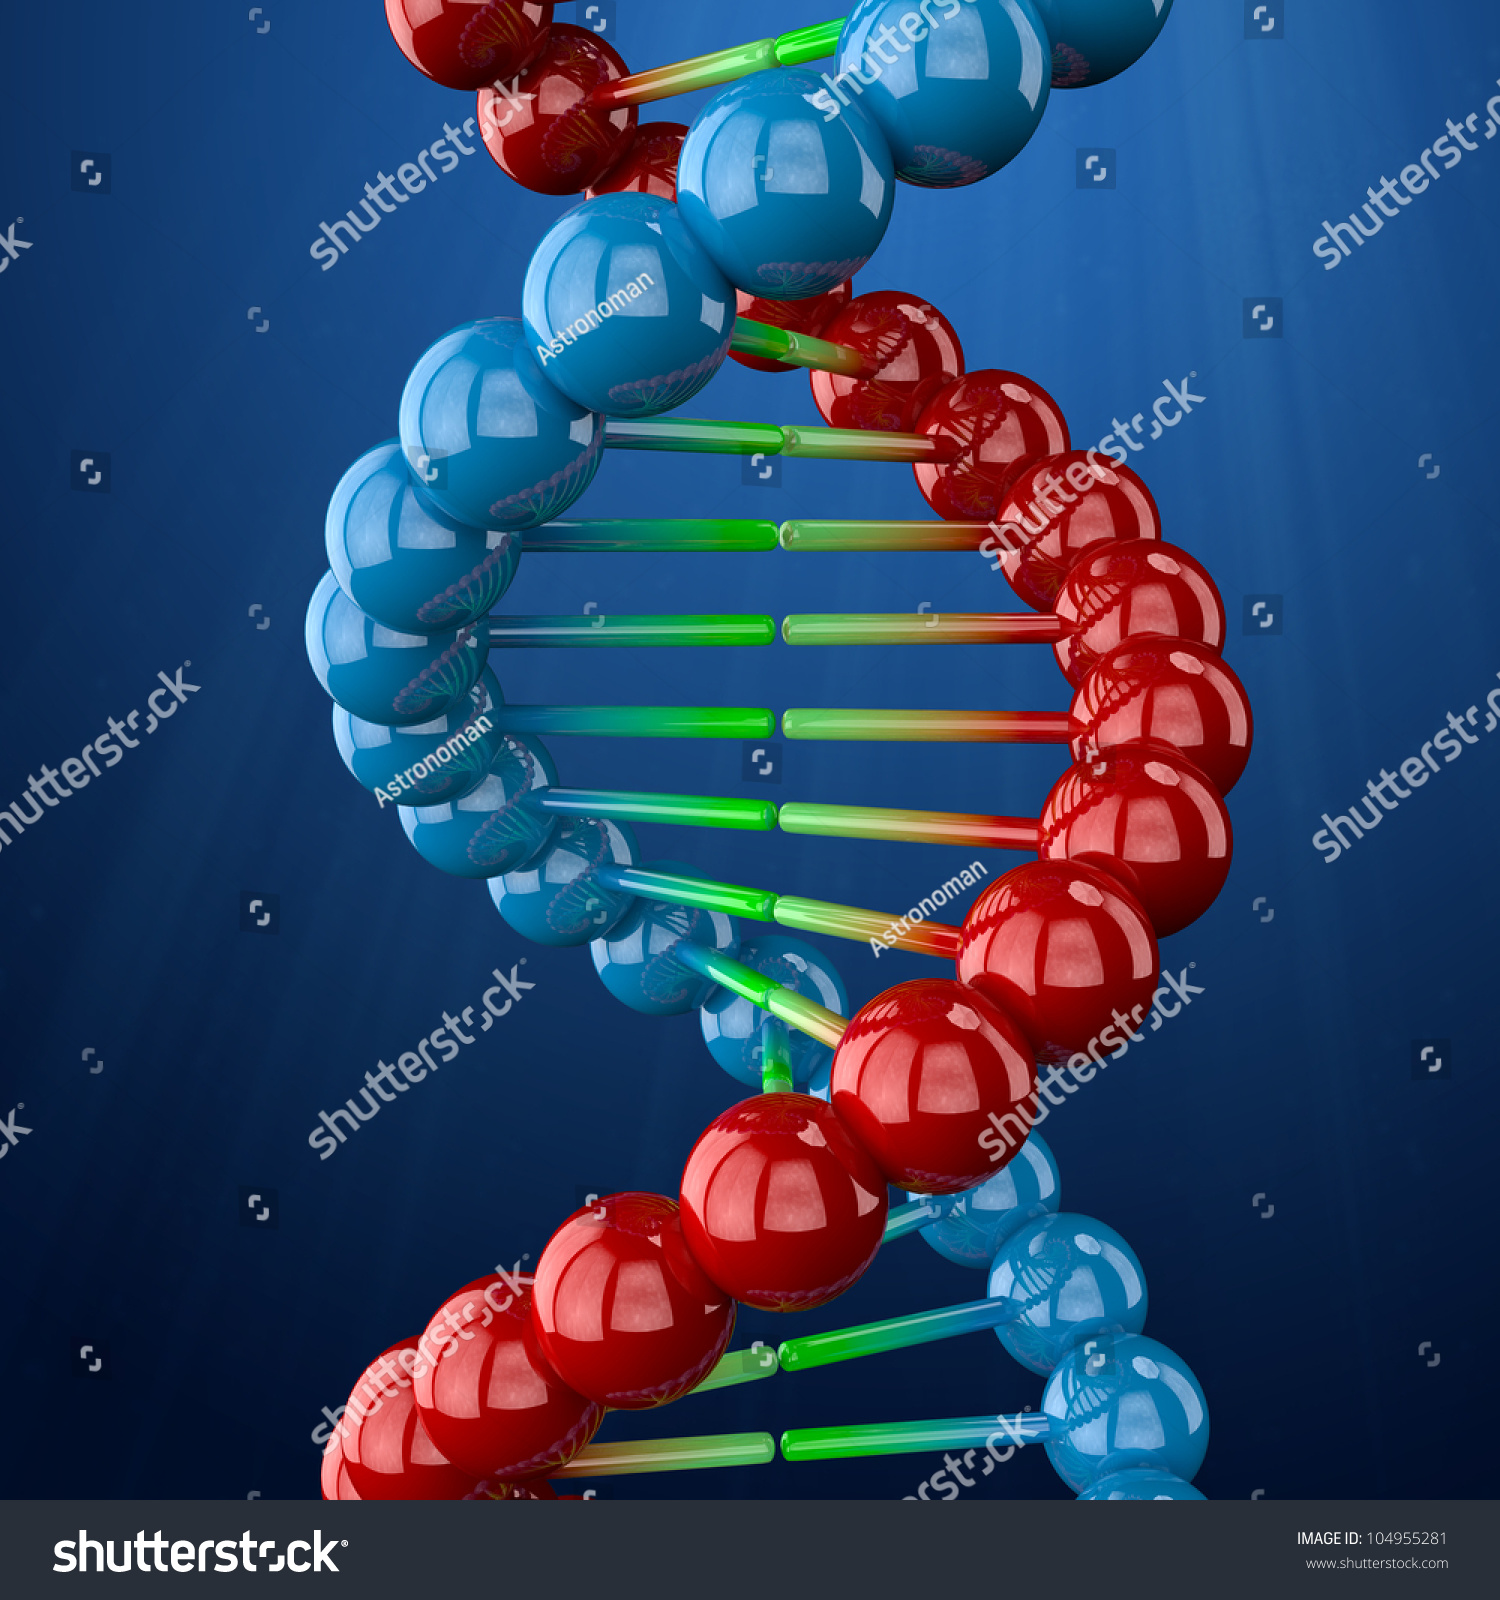 how to become a genetic engineer